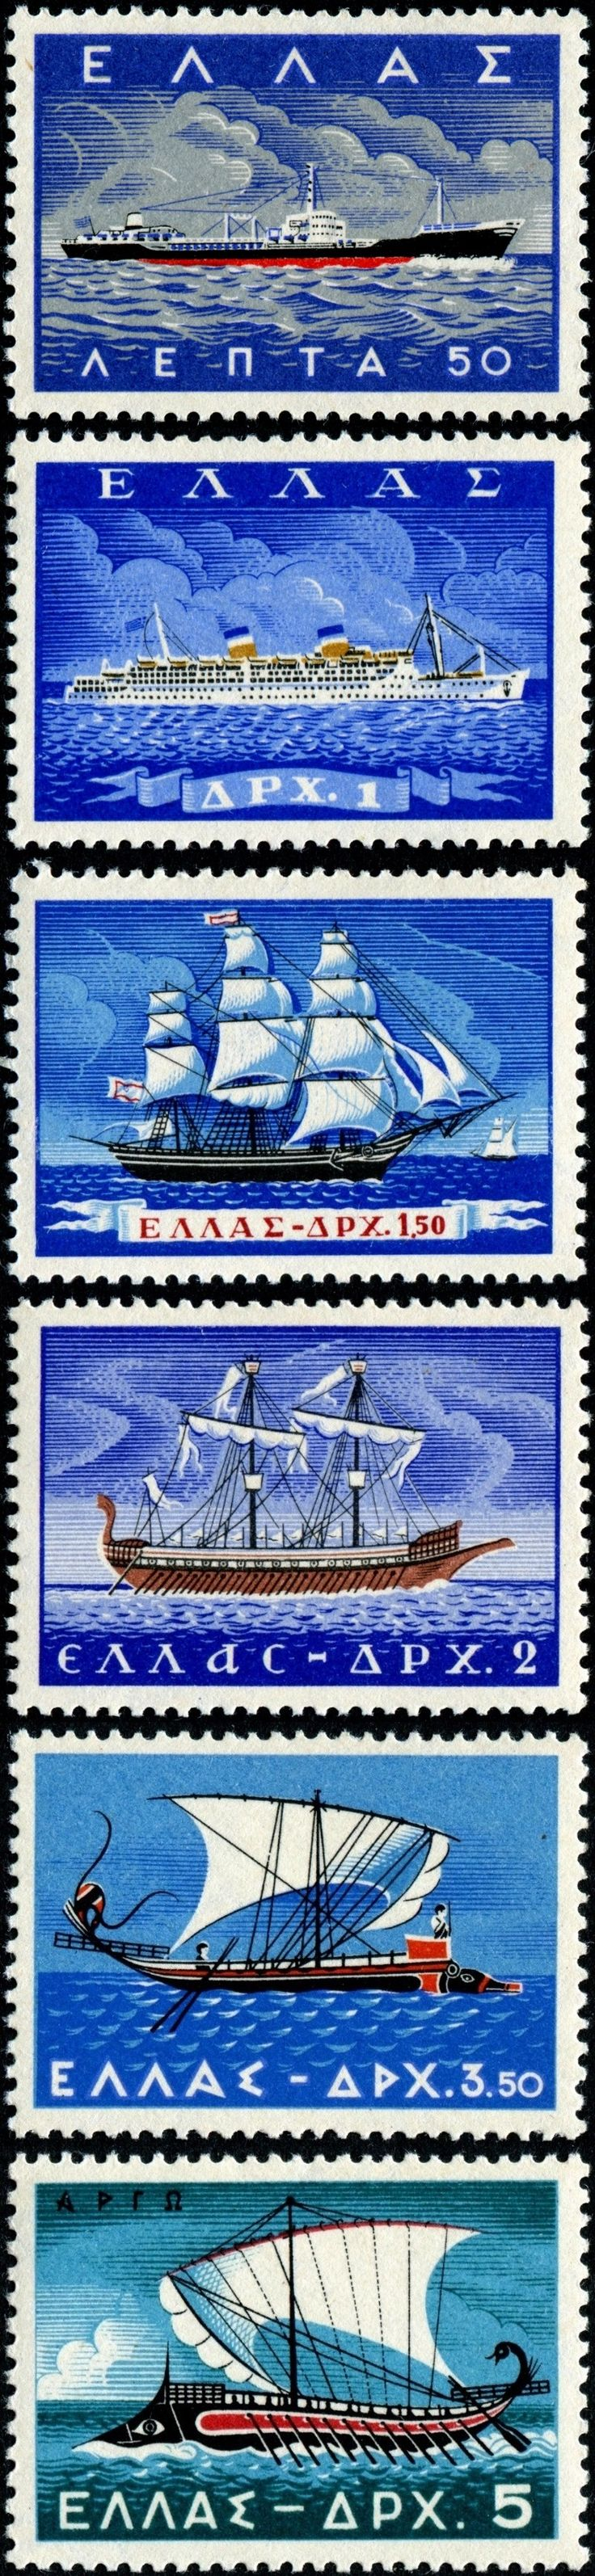 Six stamps in a ships set, designed by A. Tassos, printed by lithography, and issued by Greece on January 30, 1958 to honor the country's merchant marine, Scott Nos. 618-23.